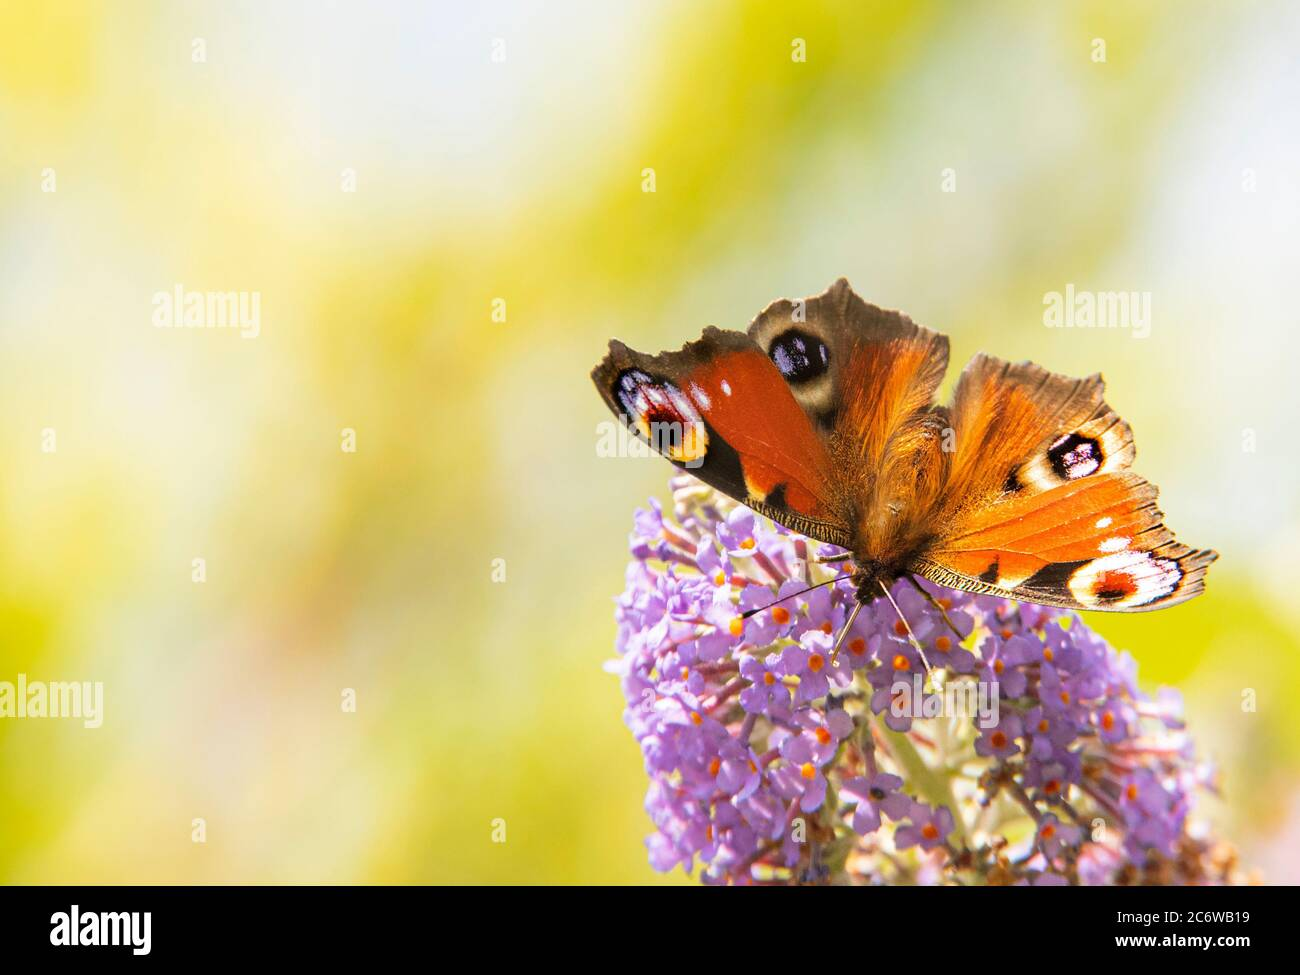 Peacock Butterfly, perched on a shrub in a British Garden, Bedfordshire, July 220 Stock Photo